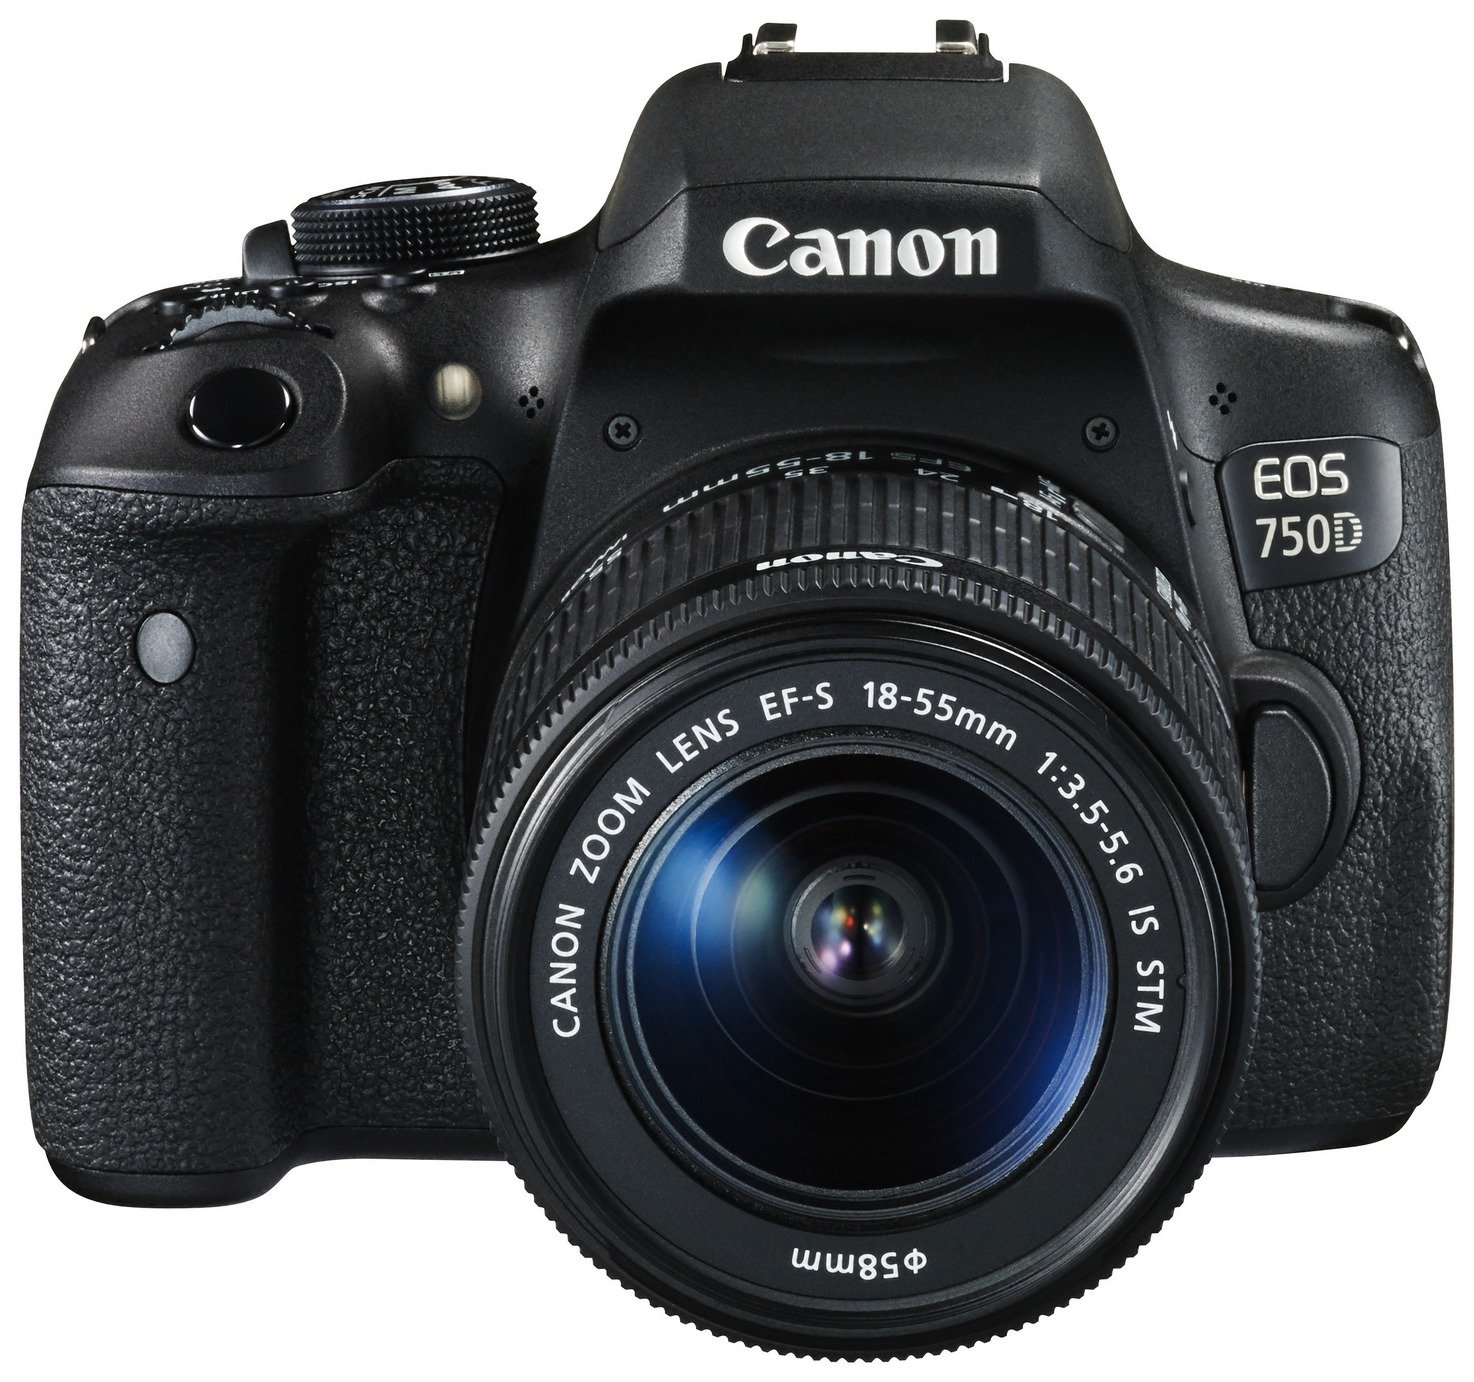 Image of Canon EOS 750D DSLR Camera with 18-135mm STM Lens - Black